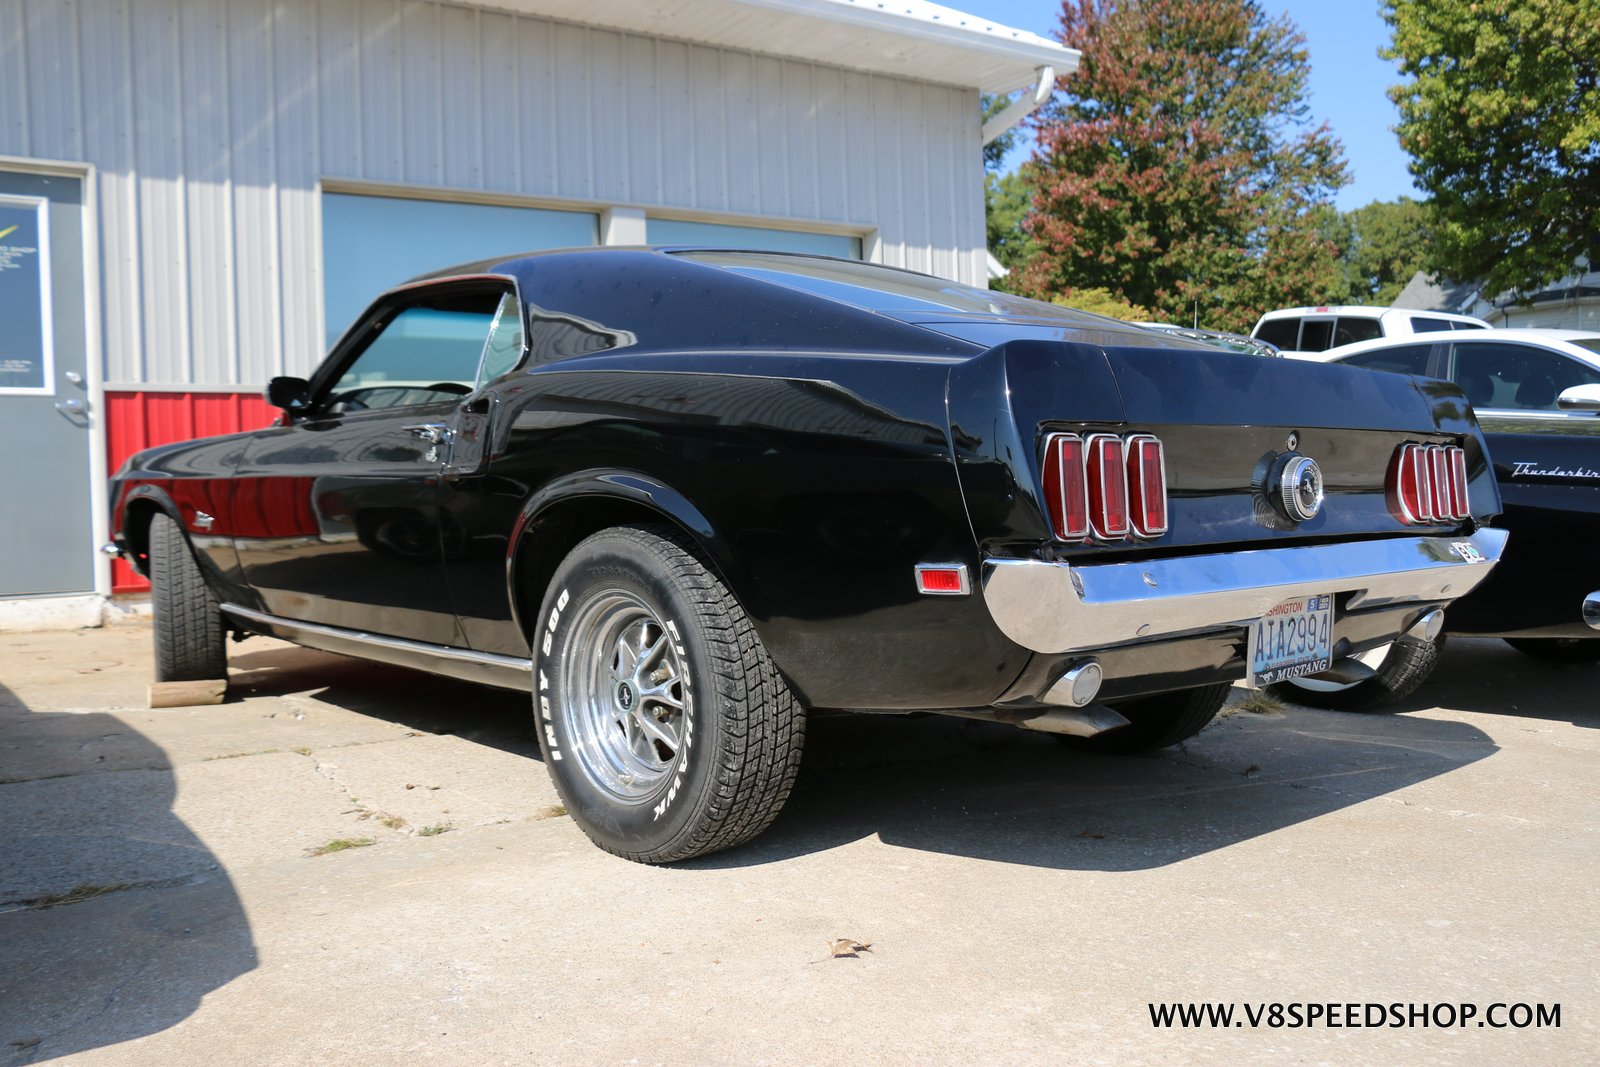 1969 Ford Mustang Fastback Maintenance at the V8 Speed and Resto Shop